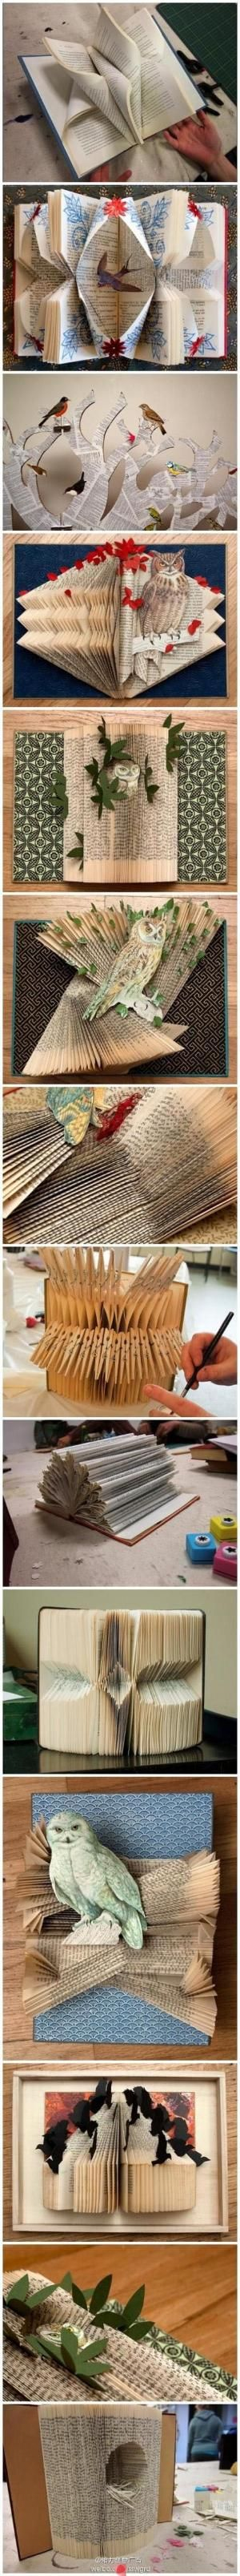 The art of paper folding - From the Chinese site, pengfu.com - can't find a creator to give credit to, but I love the work. by pilar laguna